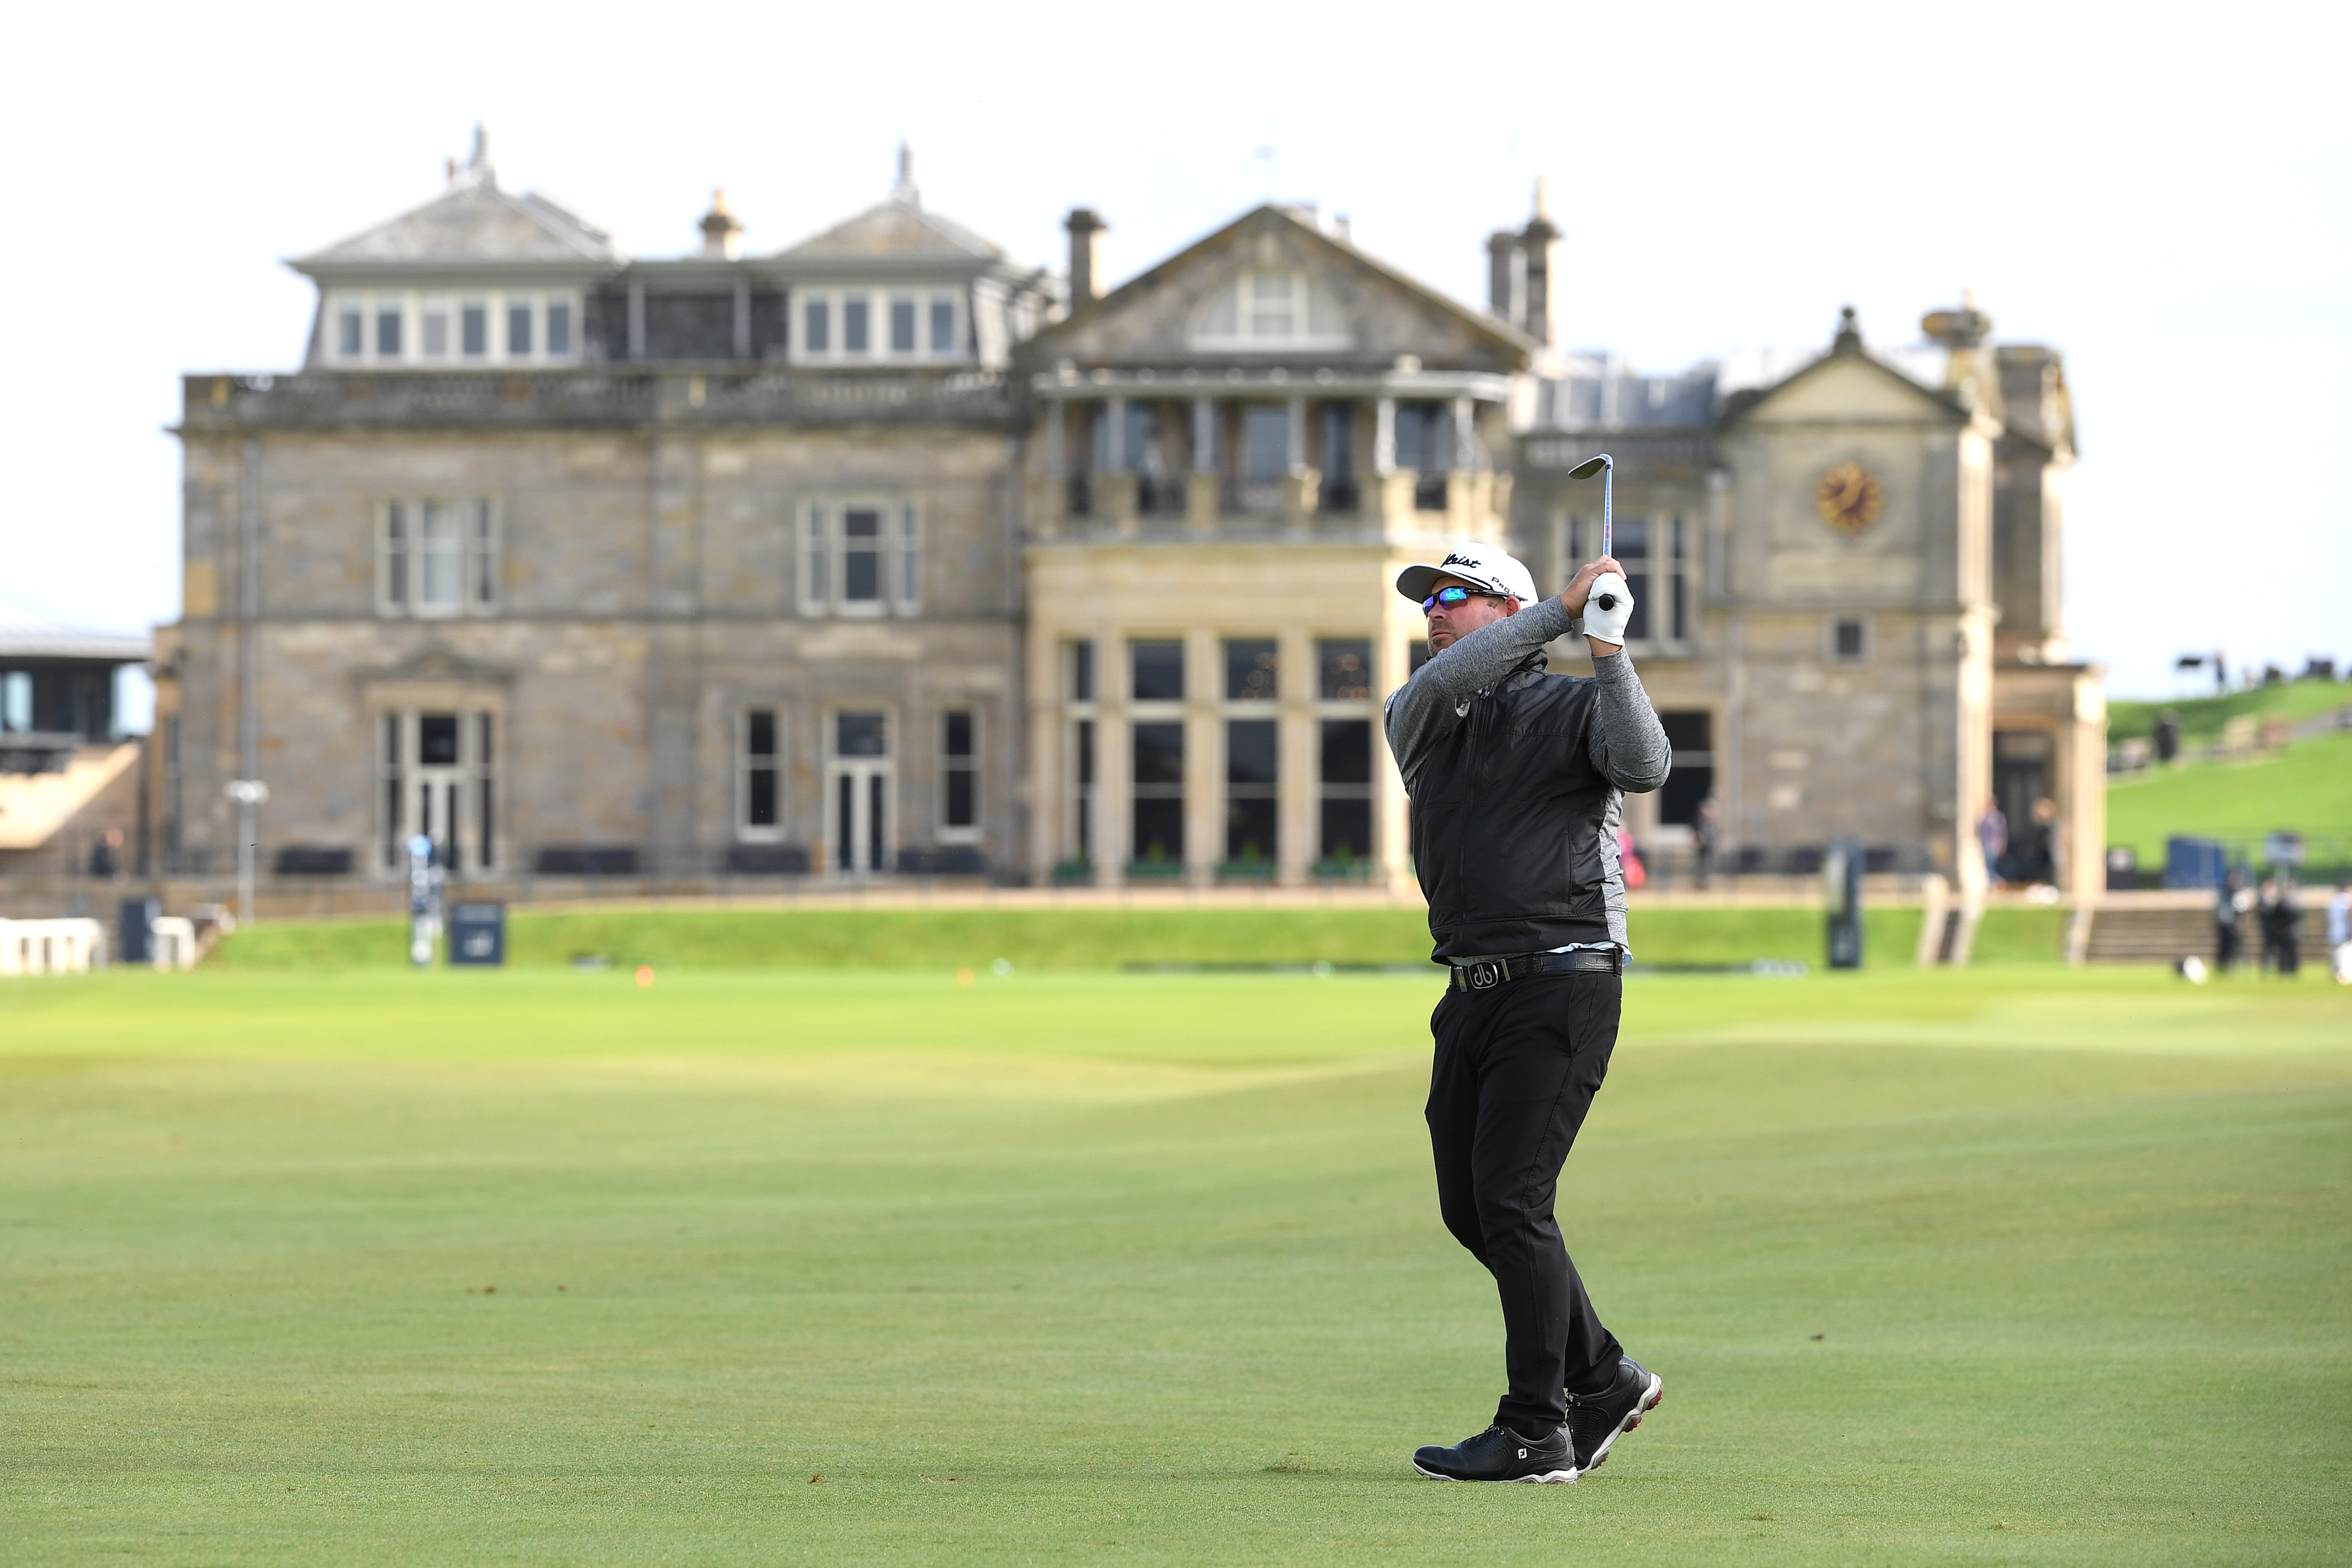 Justin Walters of South Africa plays his second shot on the first hole during day one of the Alfred Dunhill Links Championship at The Old Course. (Photo by Ross Kinnaird/Getty Images)